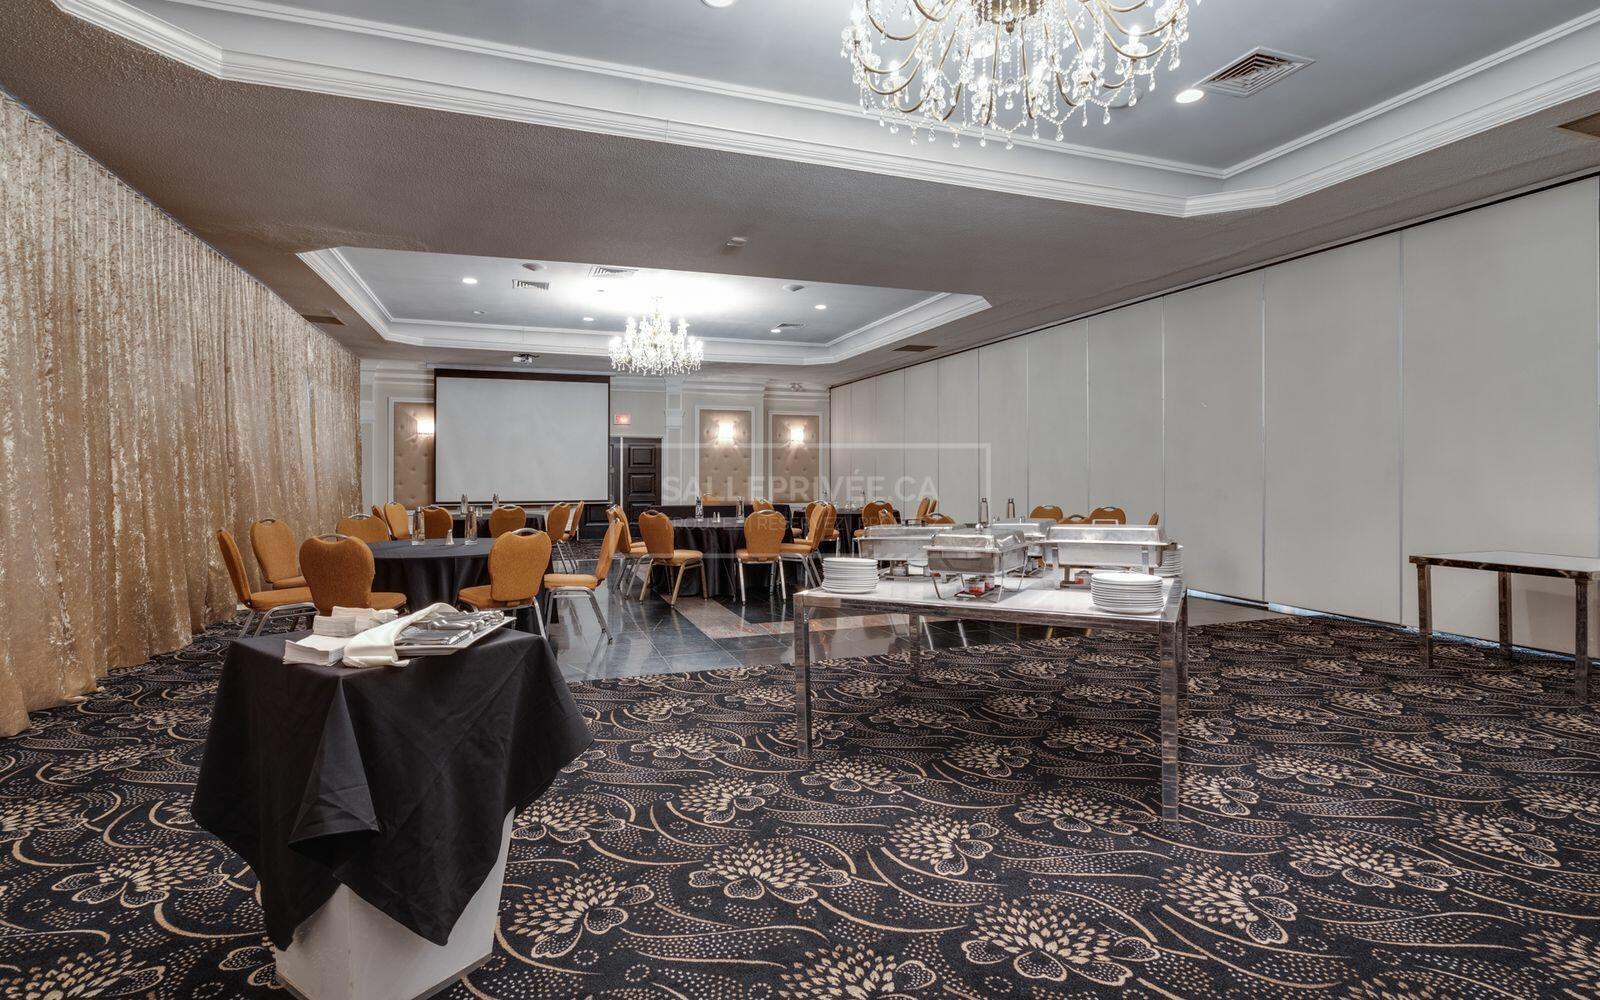 Meeting space set with buffet table and banquet rounds.